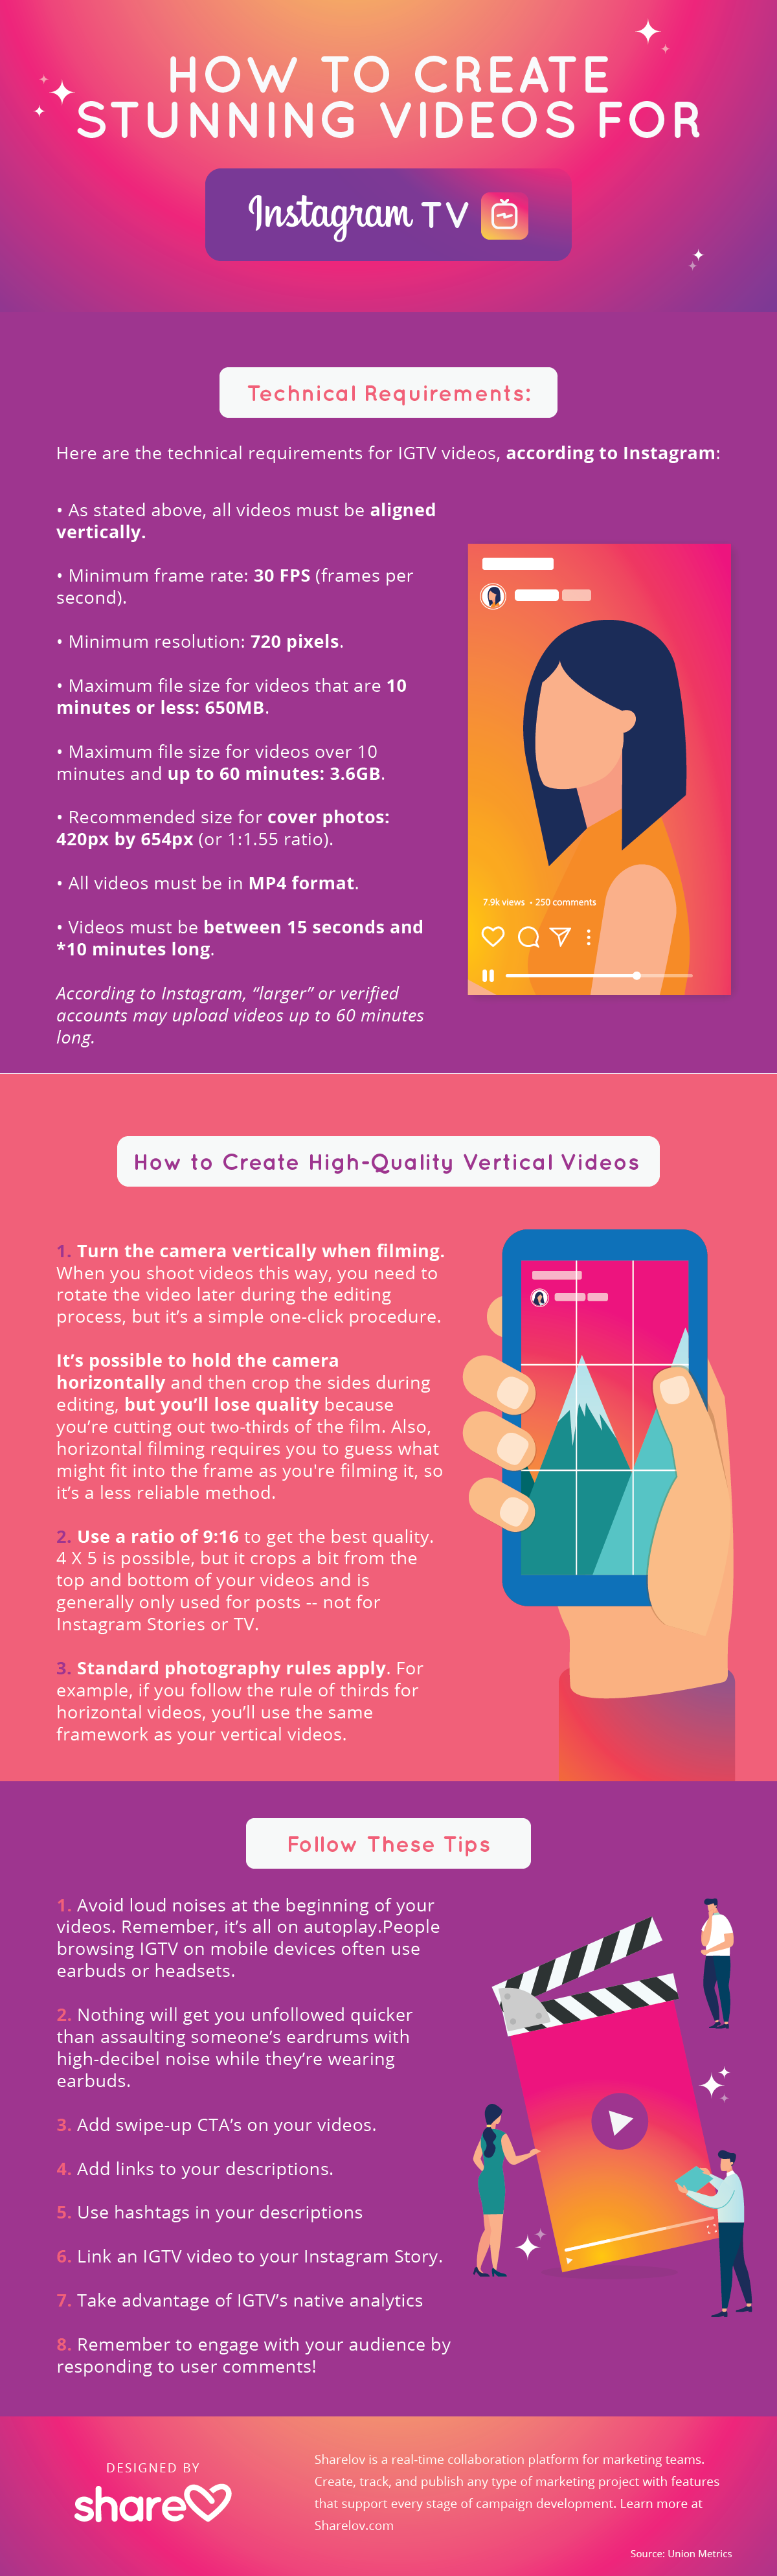 Marketer's Guide to Instagram TV (IGTV)